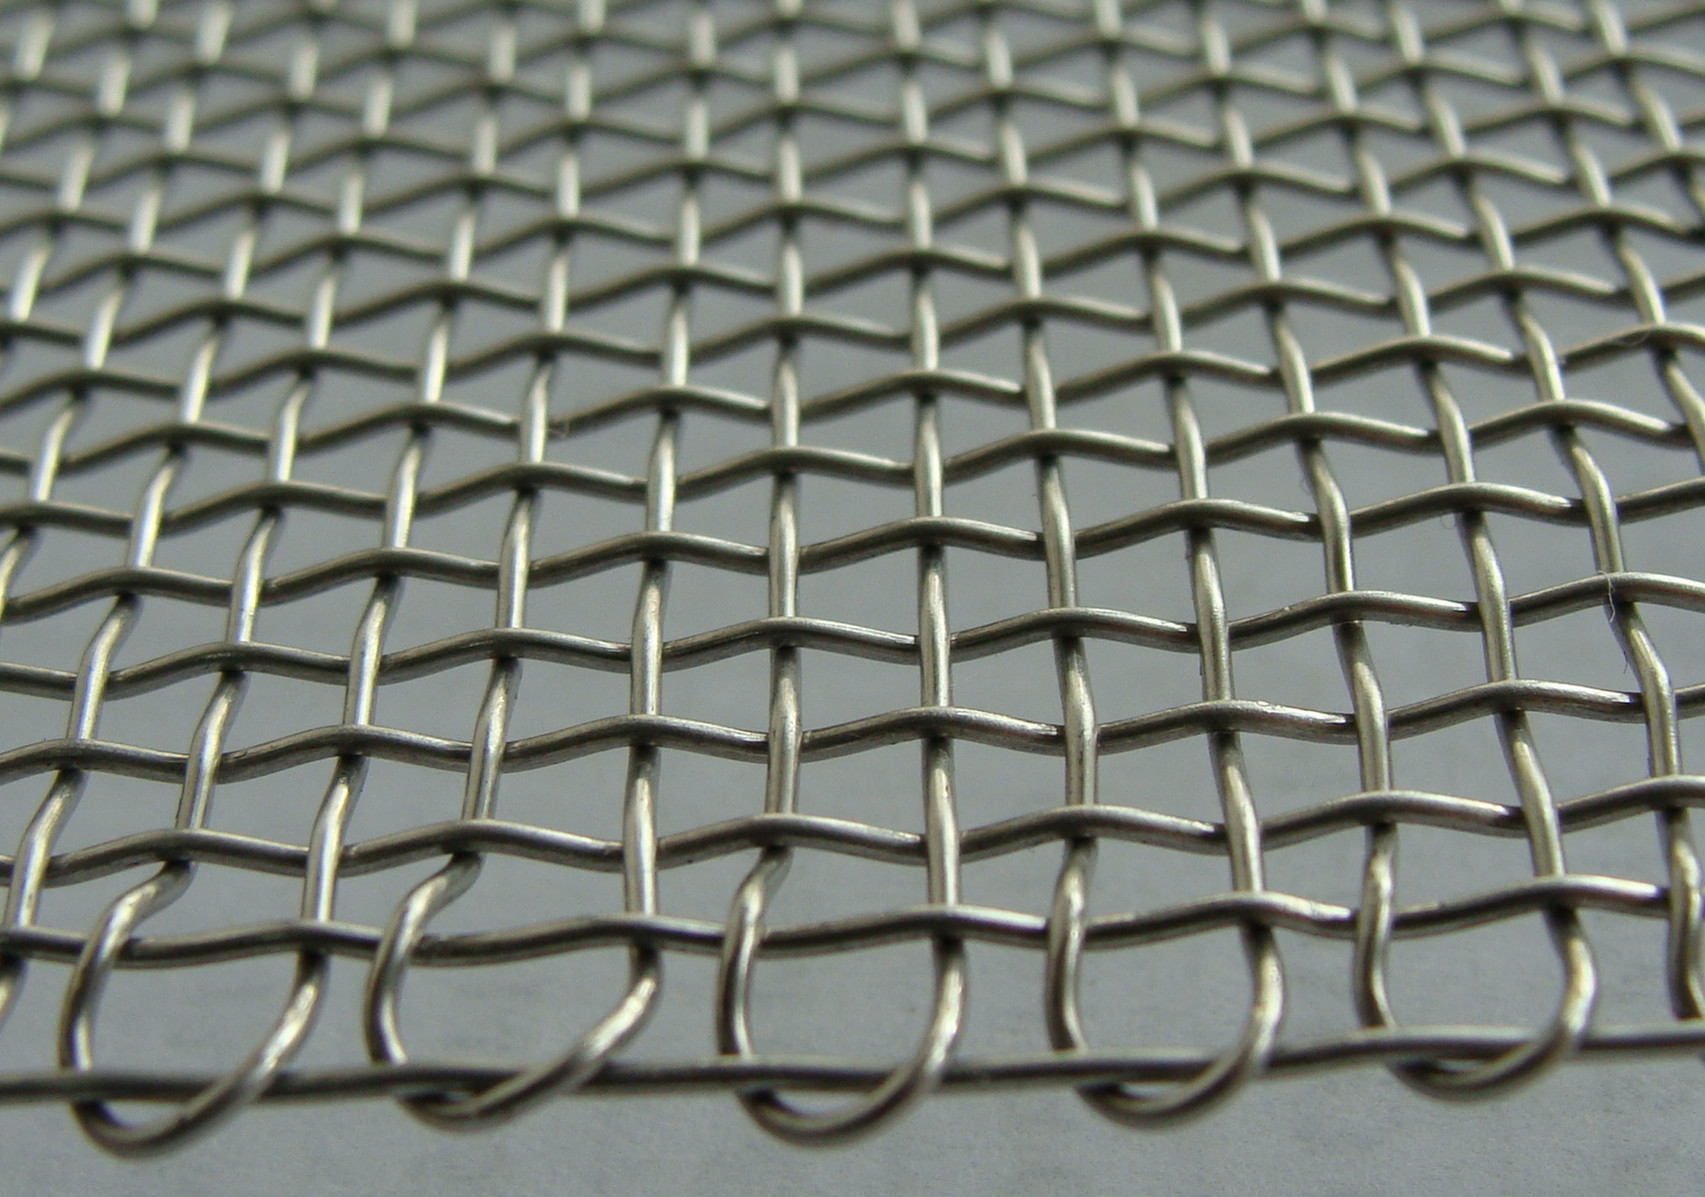 Galvanized square mesh other wire chain link fence